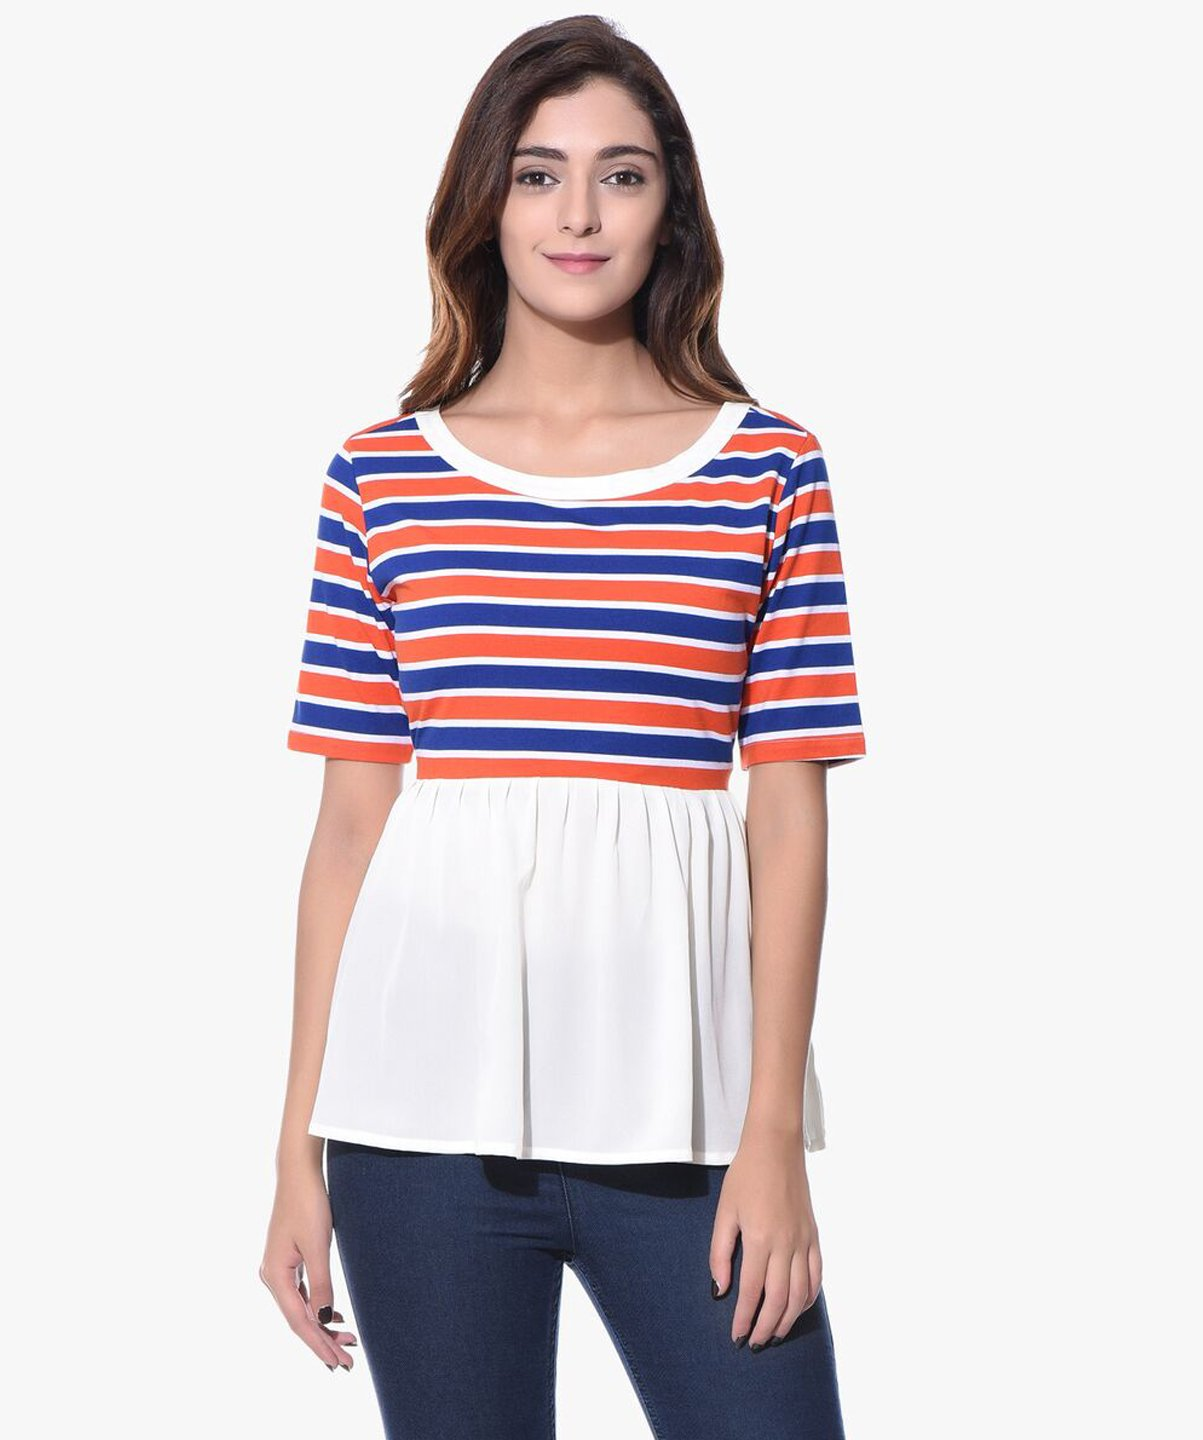 Uptownie Plus Striped Casual T-shirt (cotton) 1 clearance sale